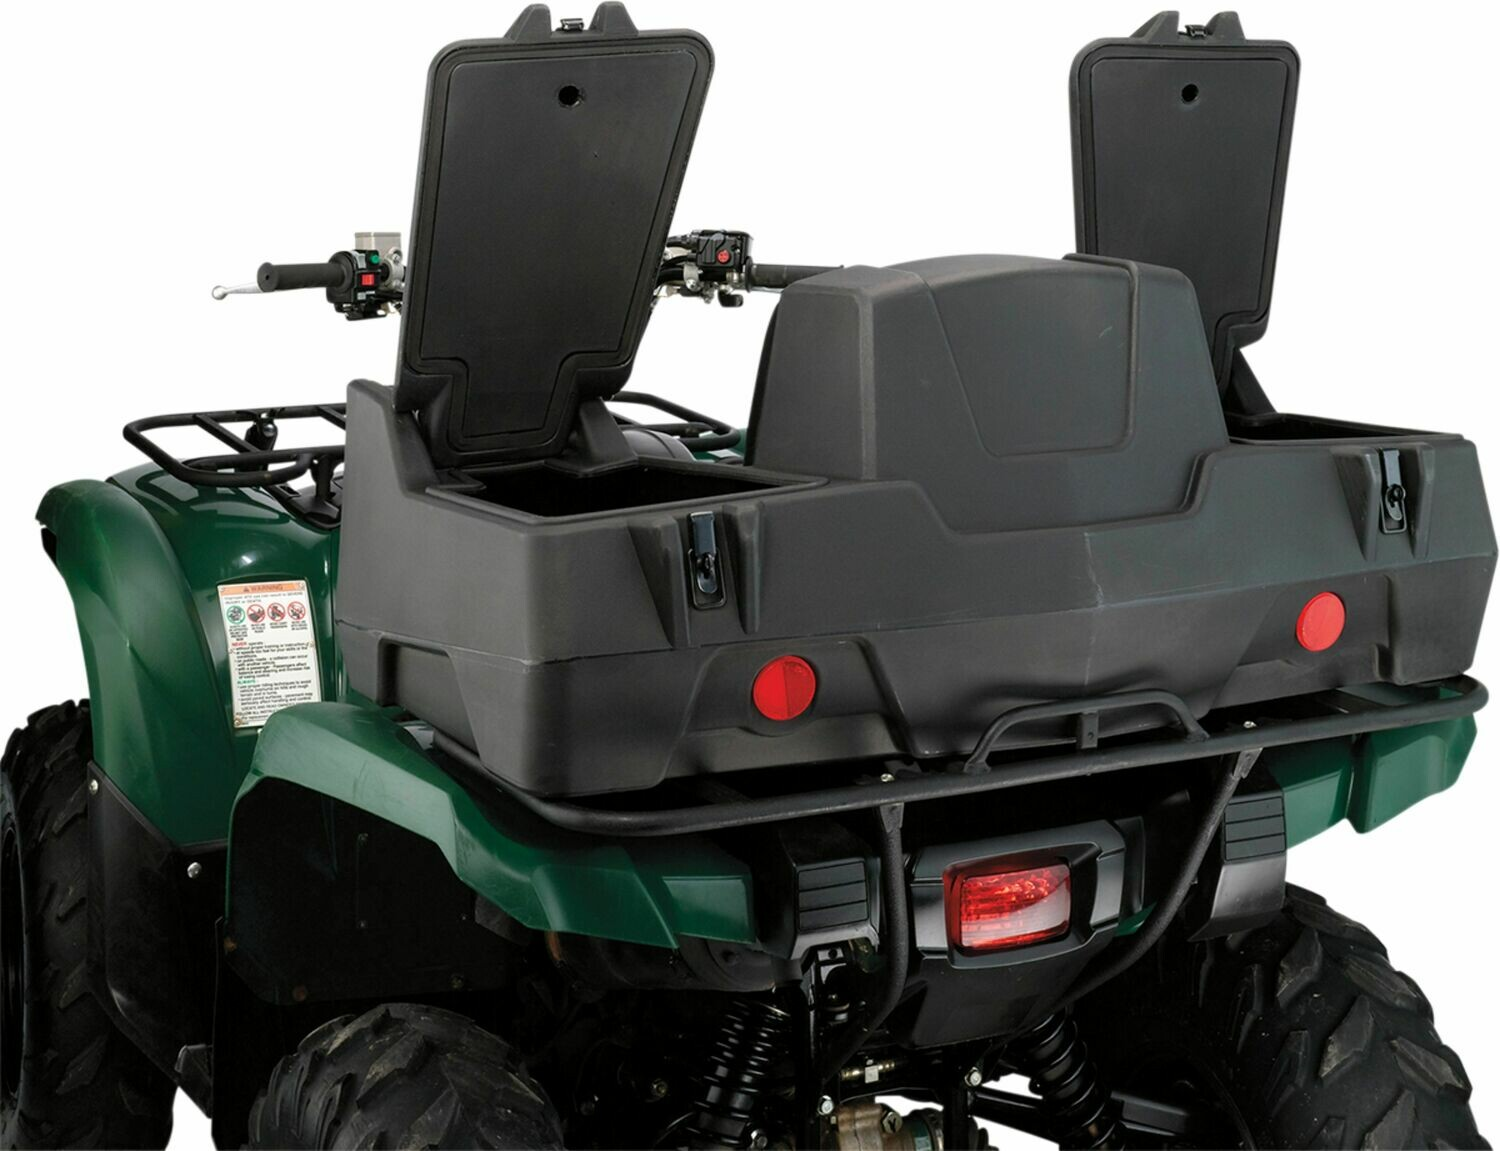 Moose ATV Diplomat II Rear Seat Storage Trunk Box (3505-0204)